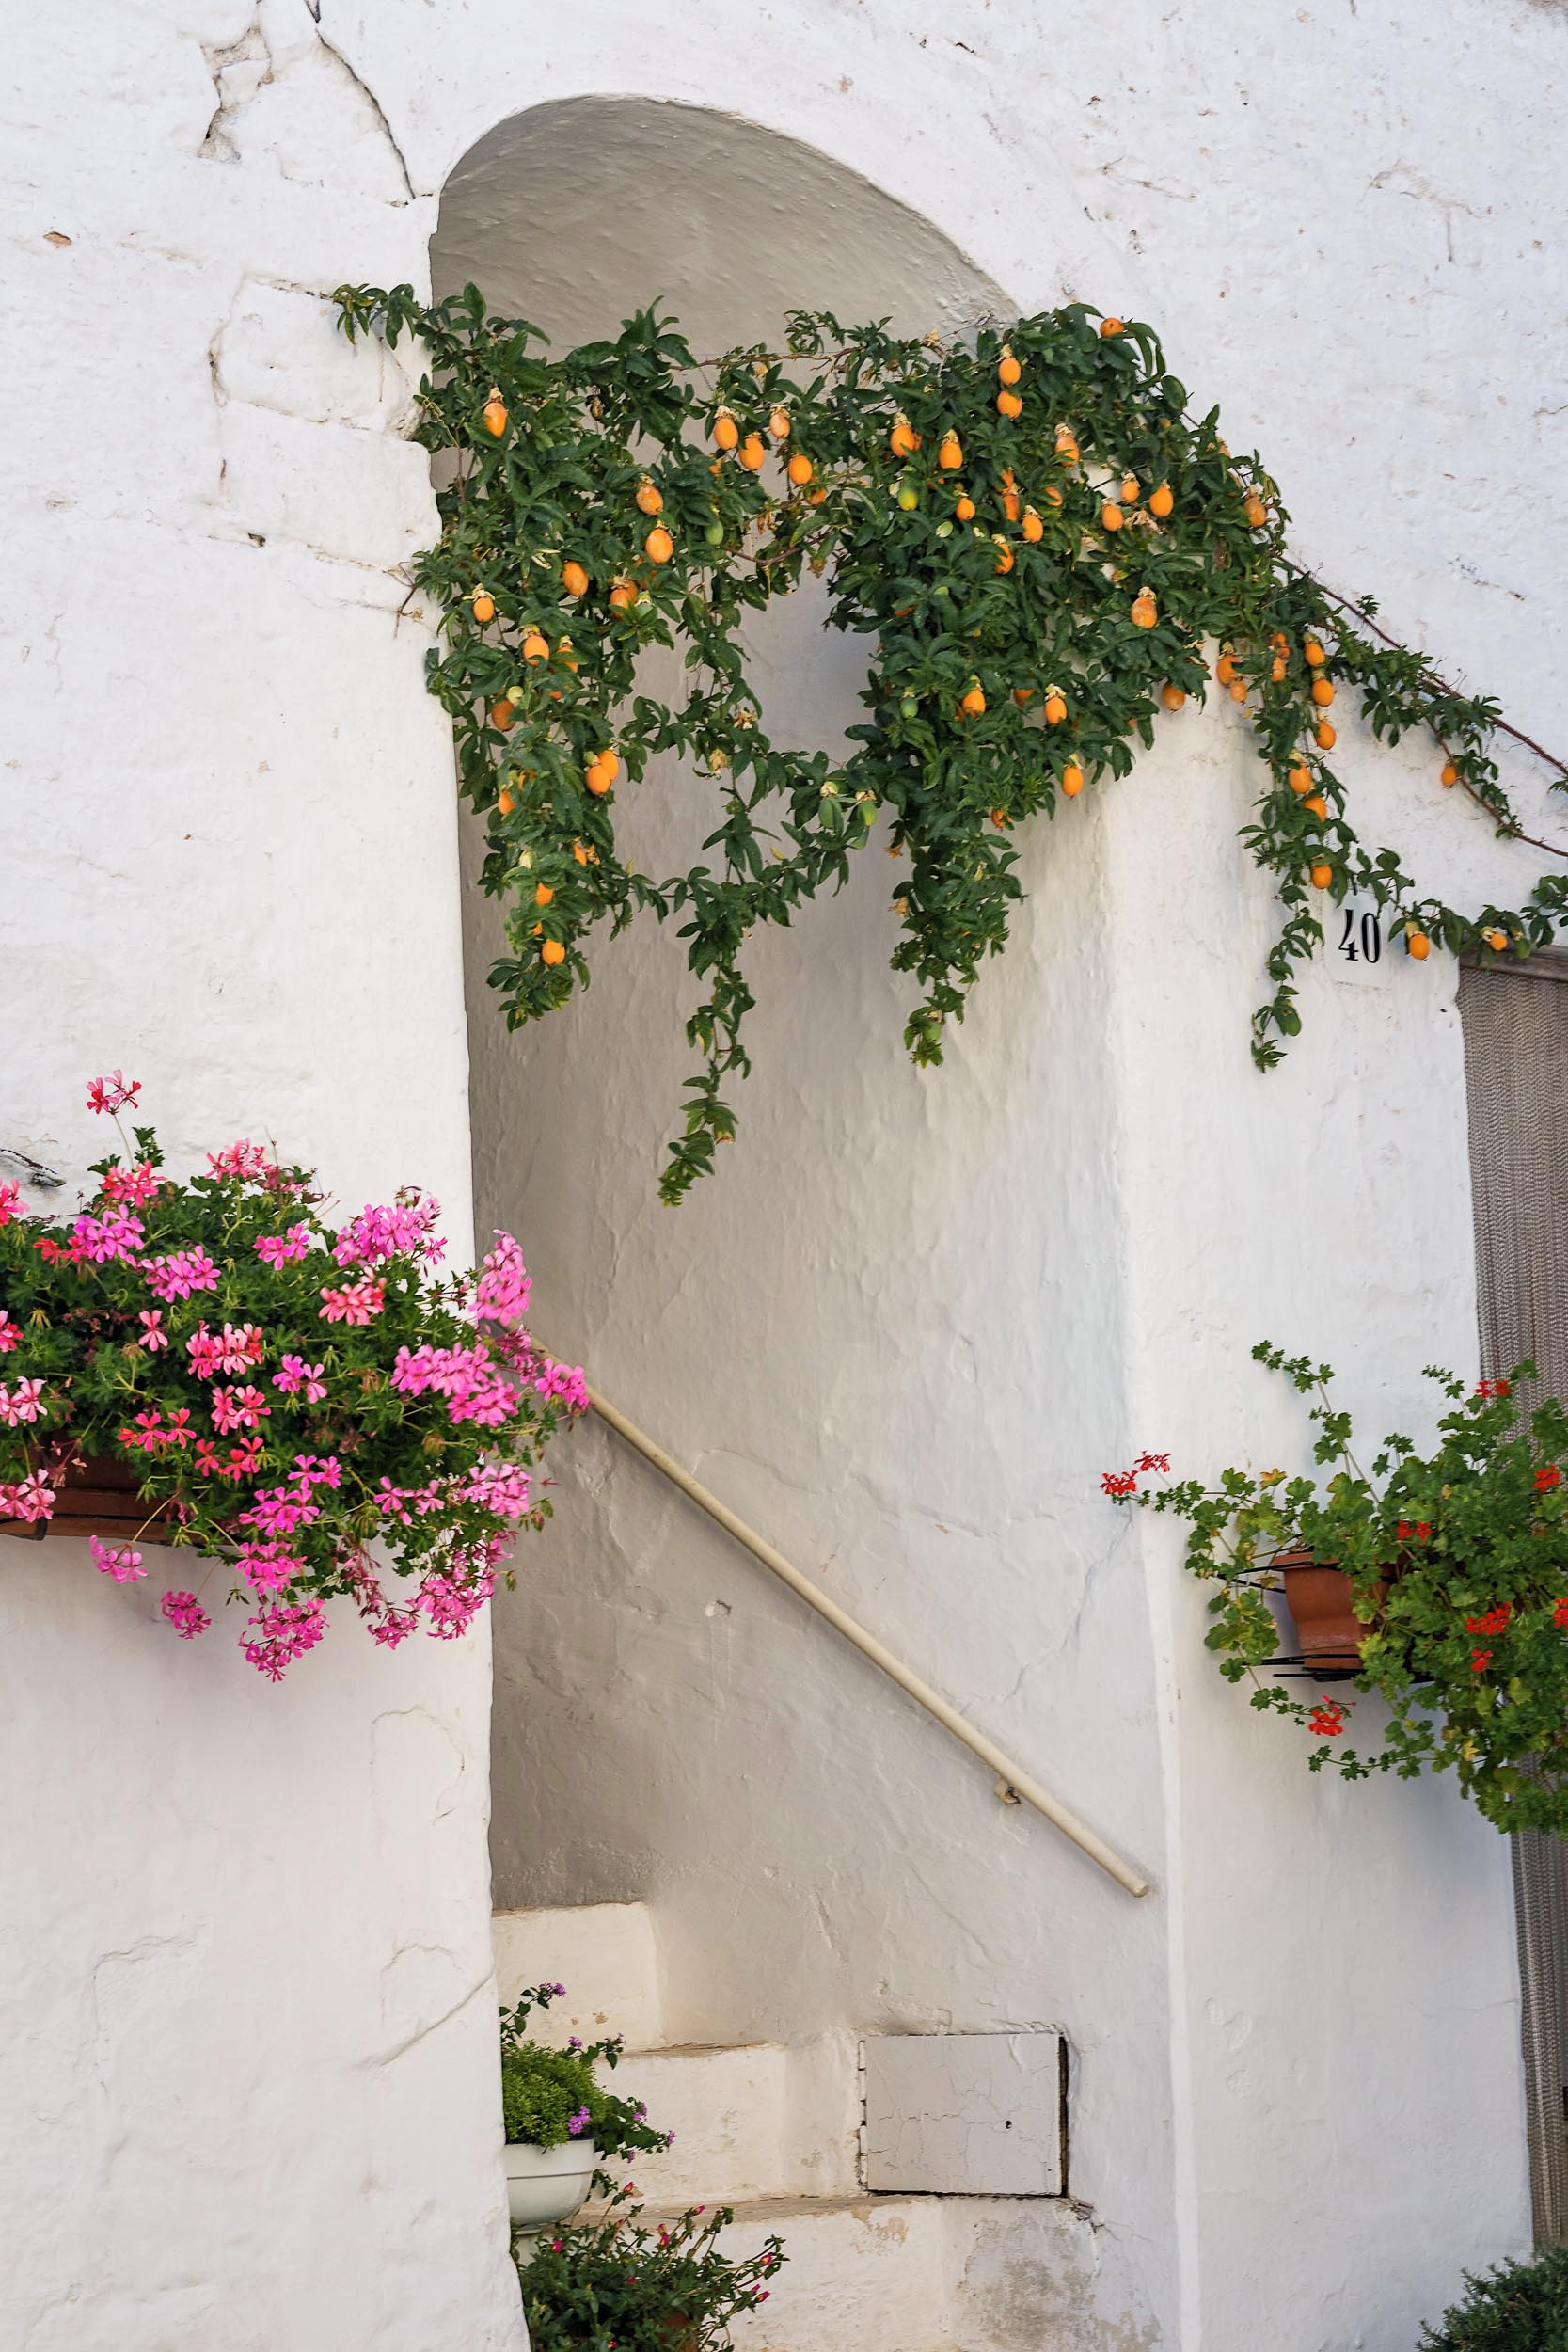 White-washed walls in Puglia